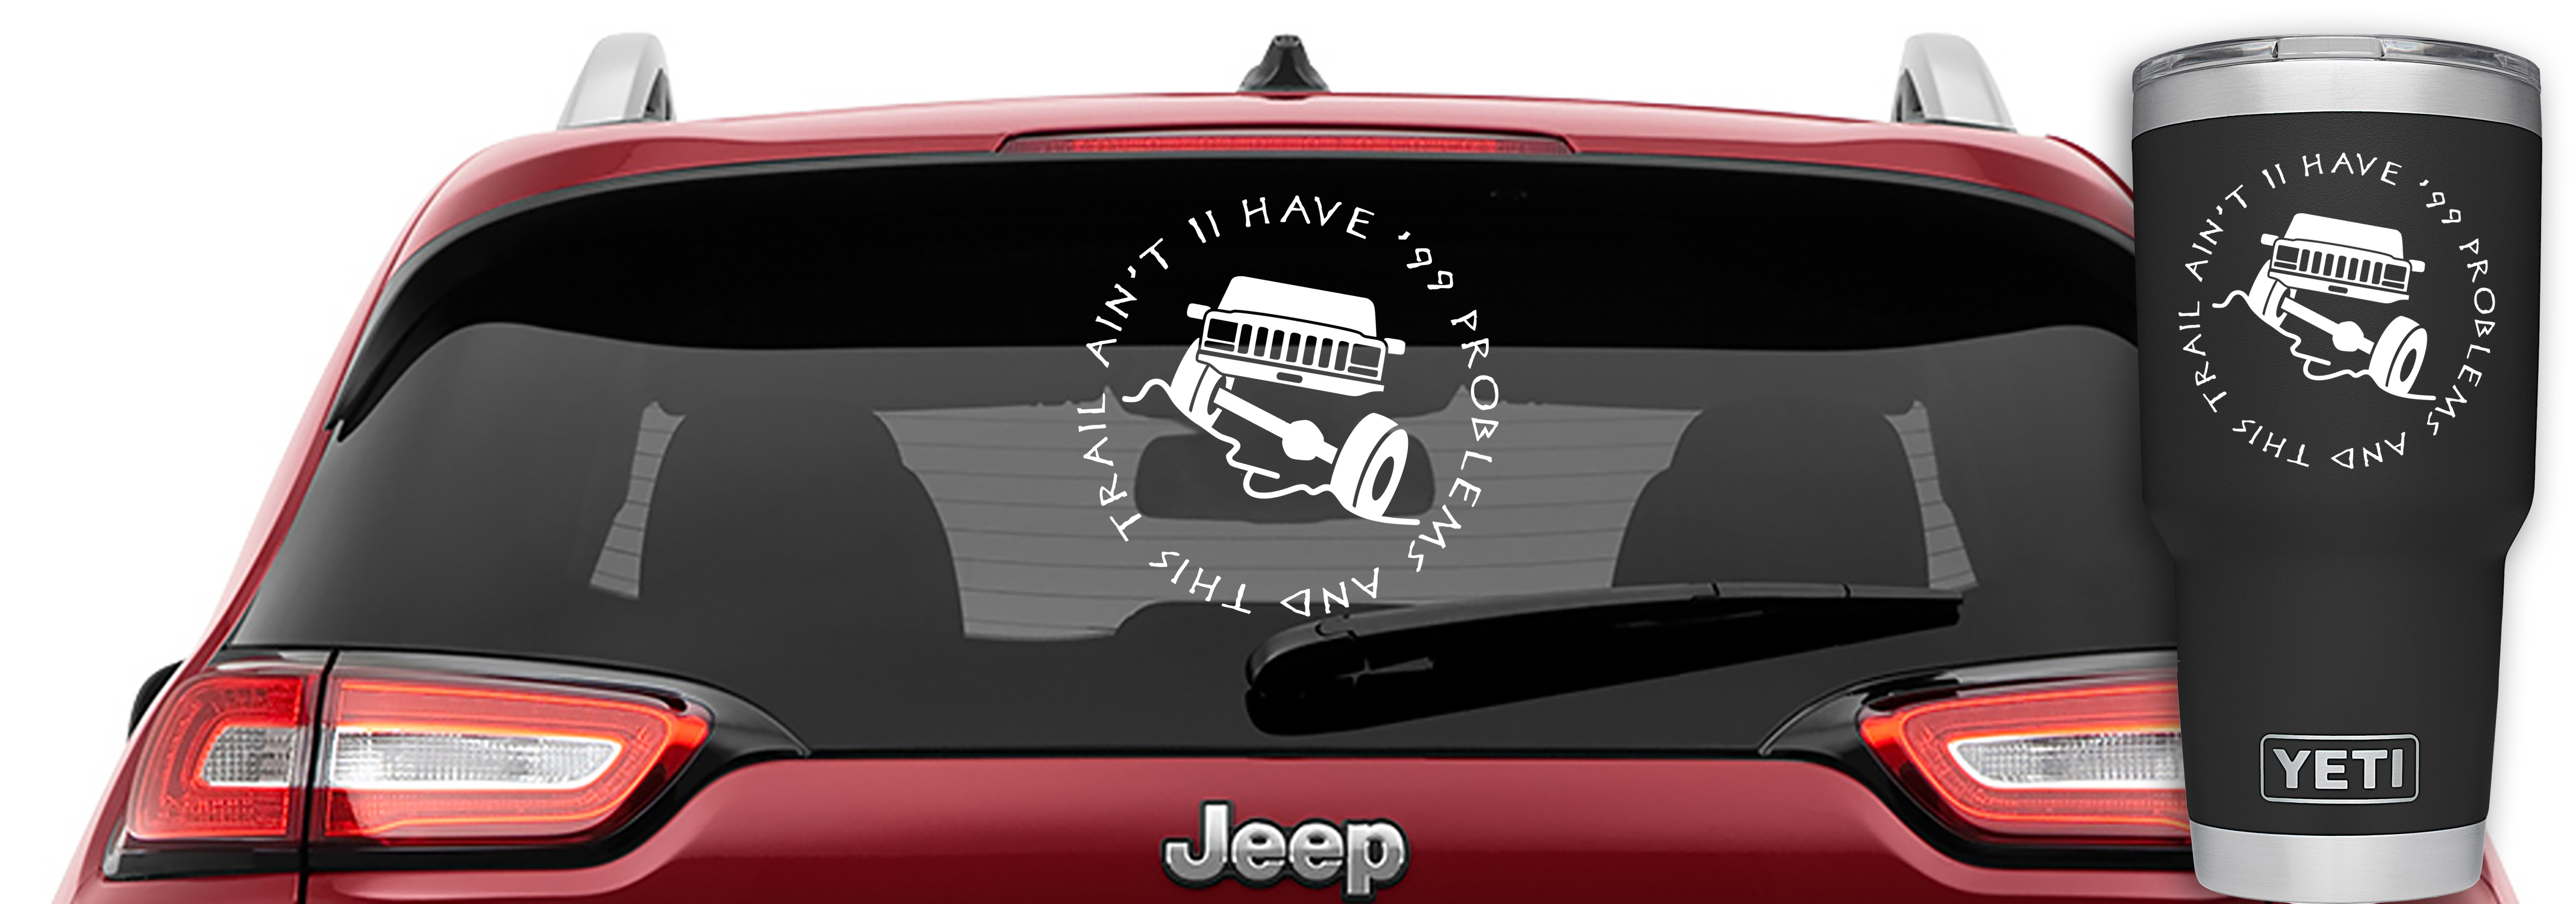 Jeep Cherokee I Have 99 Problems But This Trail Ain't One Vinyl Decal